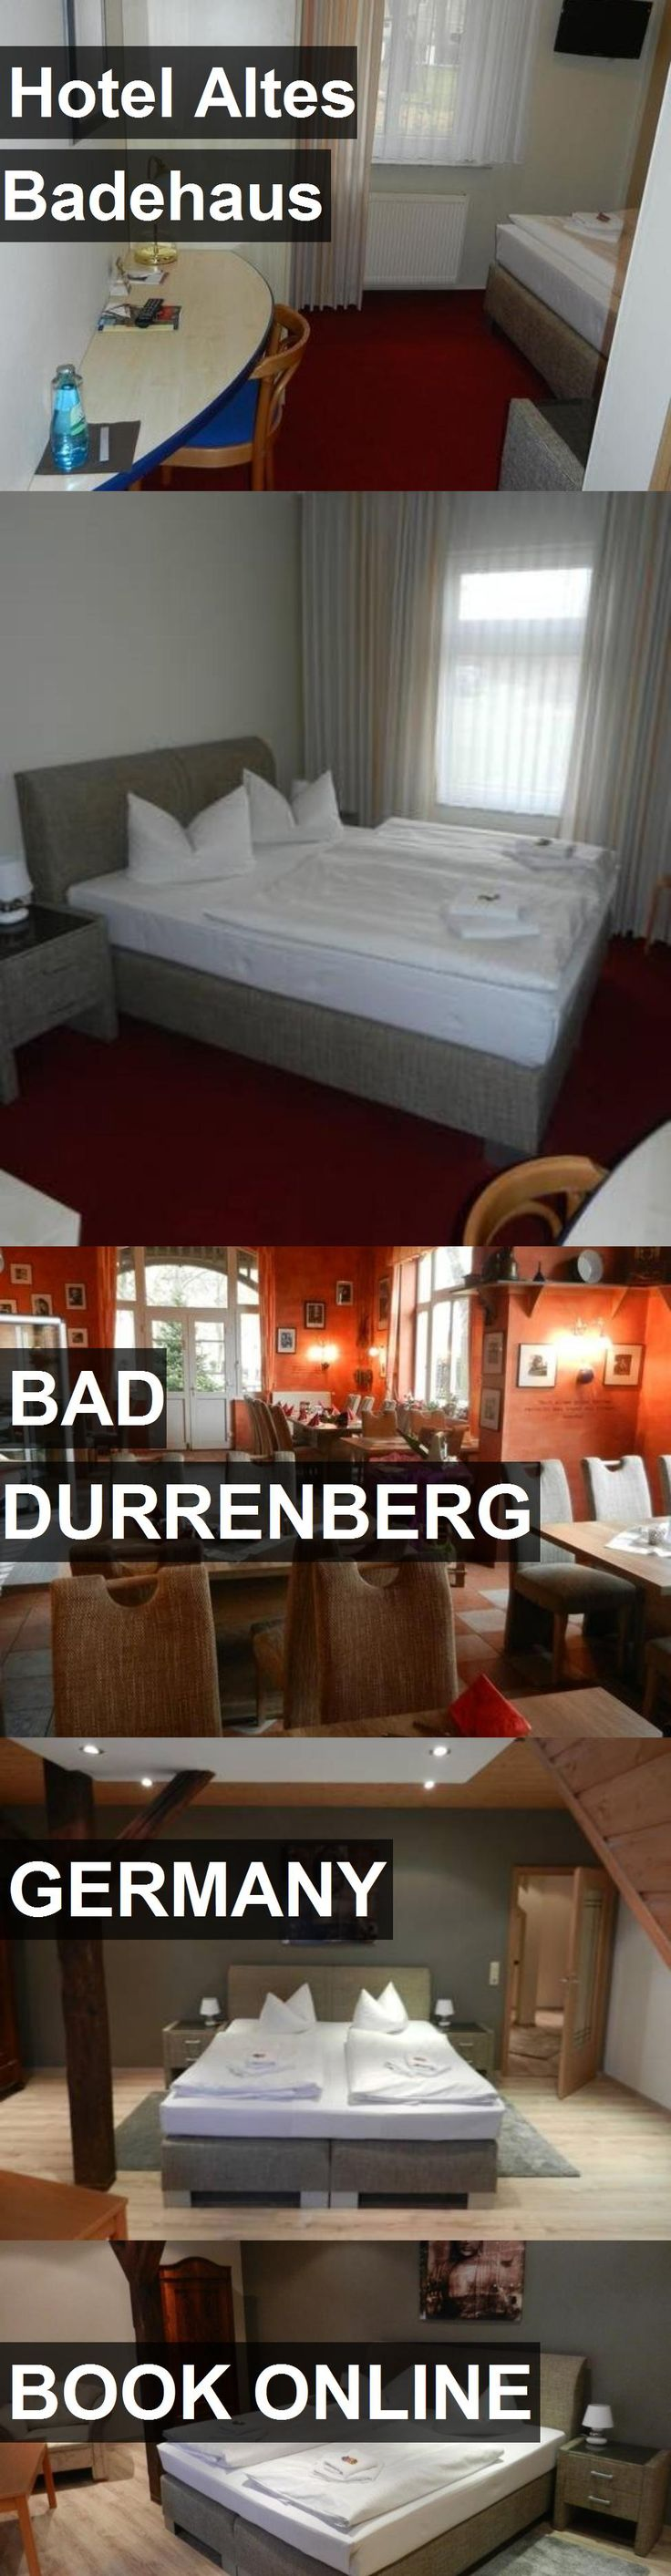 Hotel Altes Badehaus in Bad Durrenberg, Germany. For more information, photos, reviews and best prices please follow the link. #Germany #BadDurrenberg #travel #vacation #hotel